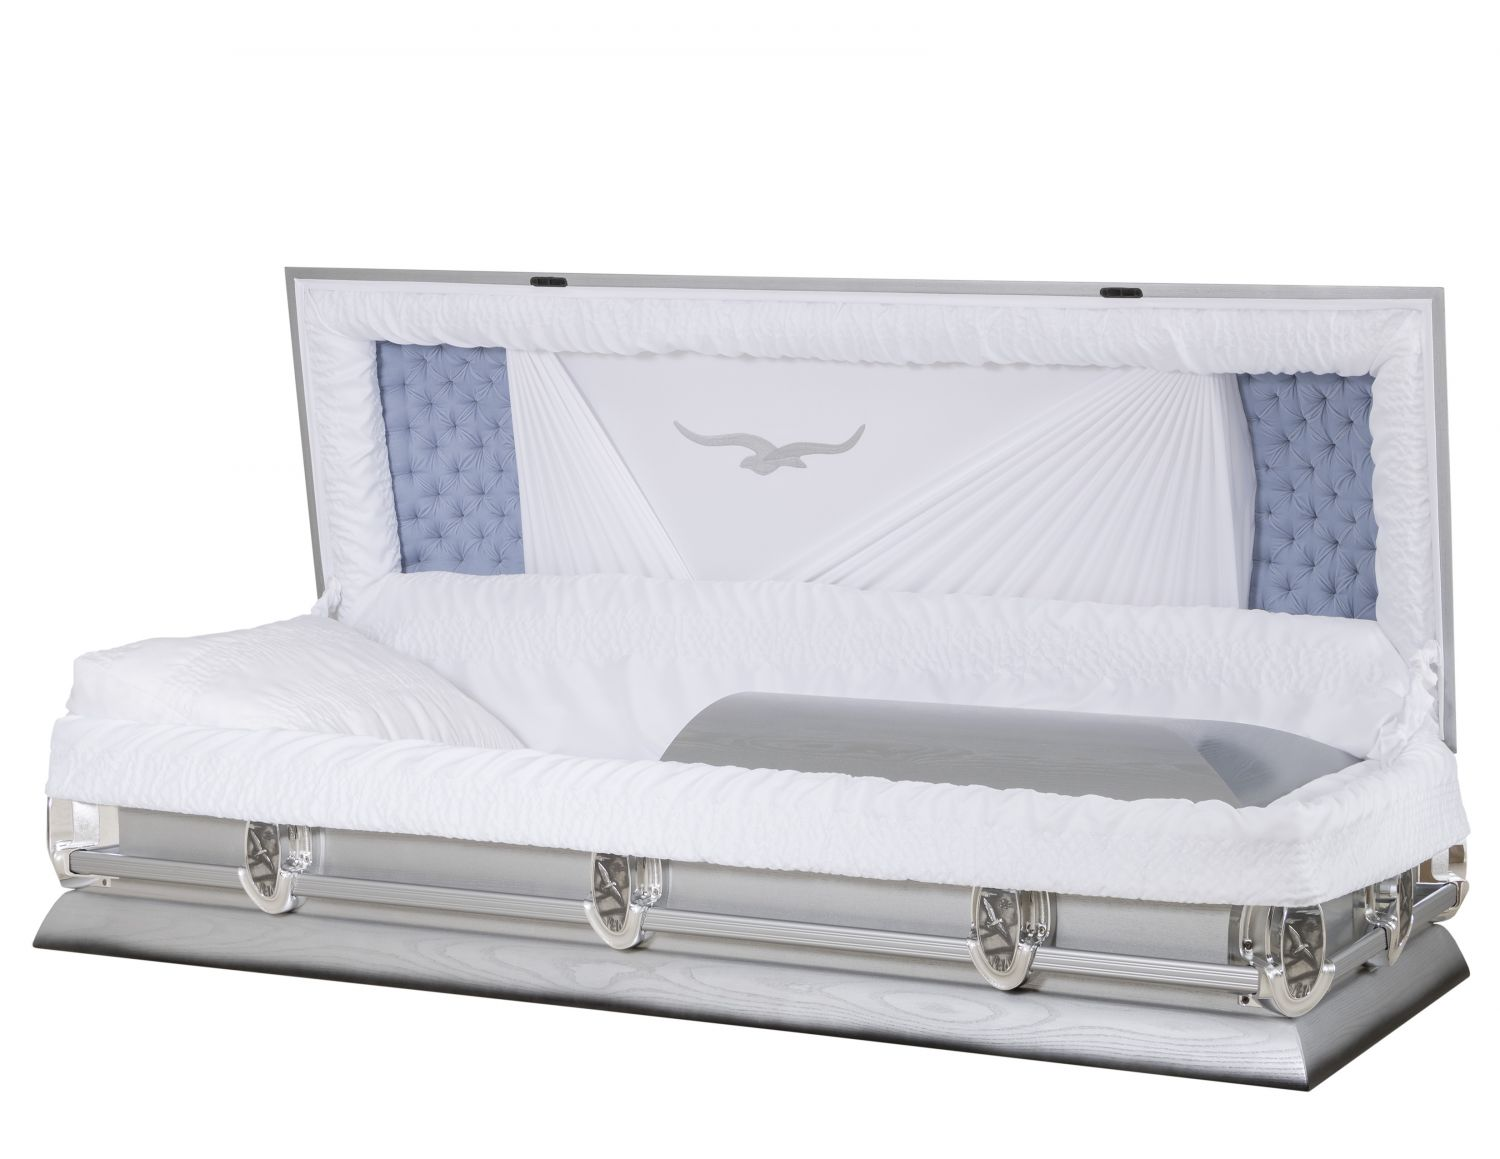 Concept Caskets 40100-00223-N ASH CASKET POLISHED CREPE GREY WOOD FIBER NO BA-18NCK BUMPER 3 X 1 NICKEL